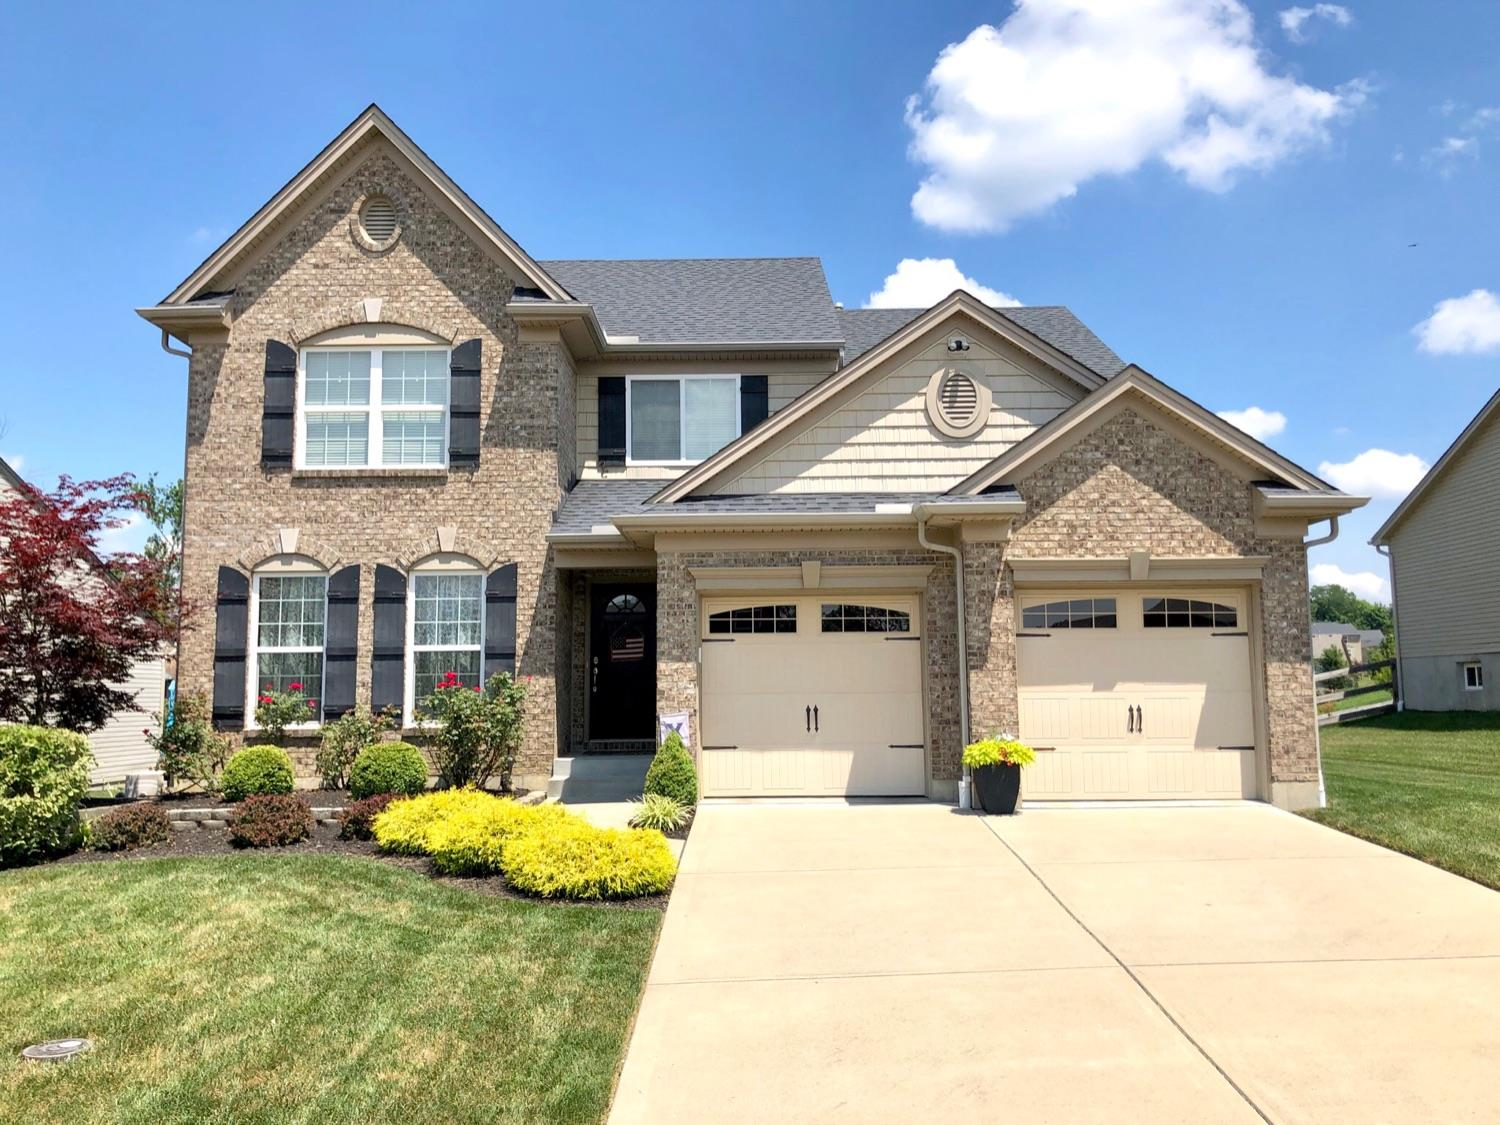 Photo 1 for 8849 Coronet Ct Whitewater Twp., OH 45002